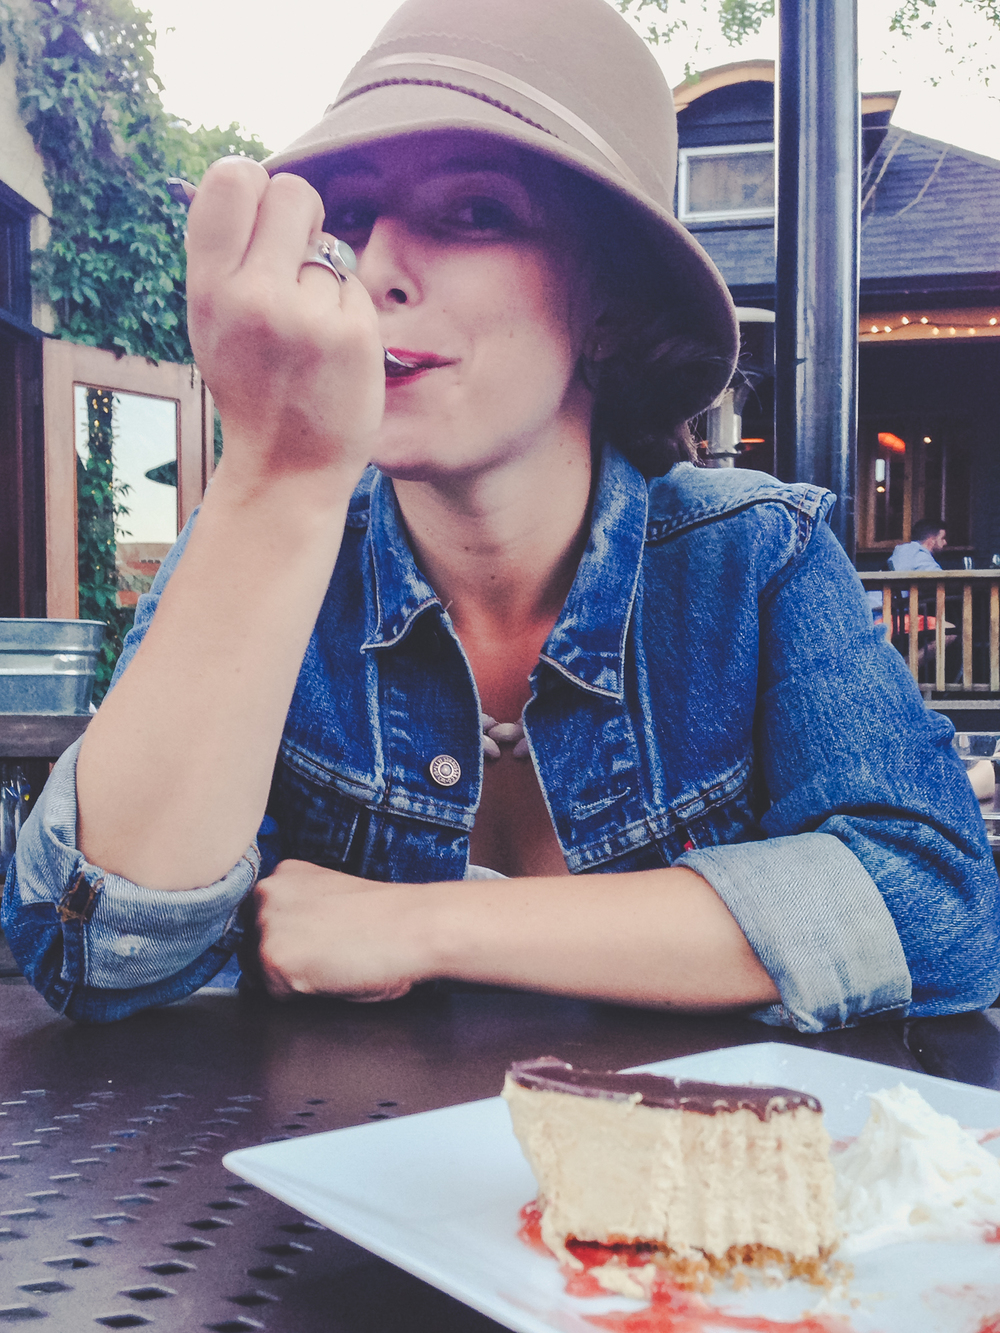 (you might say that at this particular point she's having her cake and eating it too.)